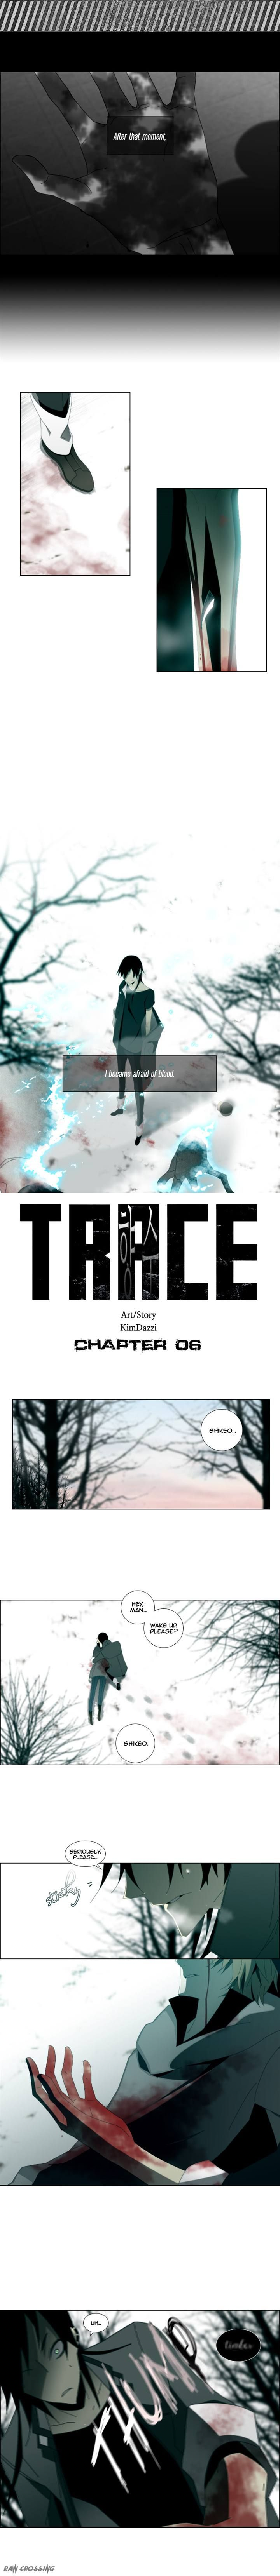 Trace: Perfume 6 Page 1